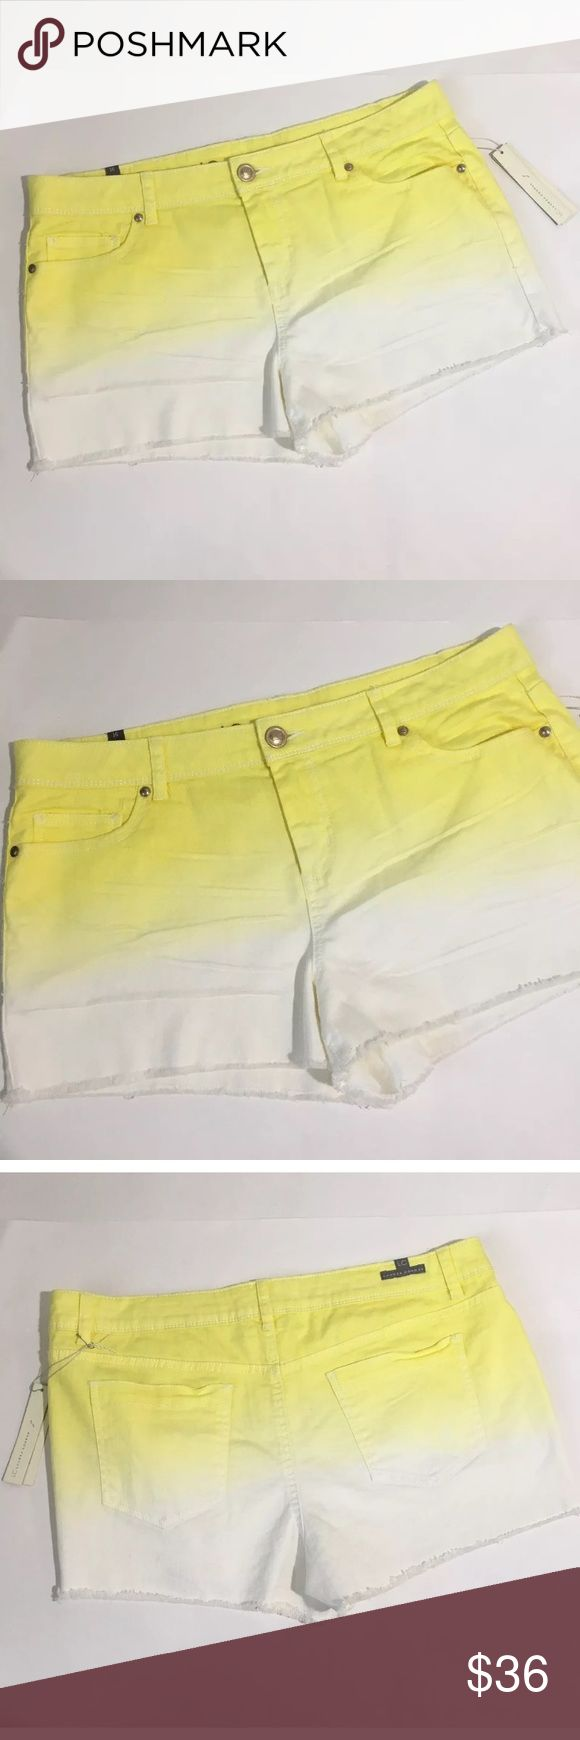 "NWT Lauren Conrad Yellow White Cutoff Jean Shorts New with tags Lauren Conrad yellow and white cutoff jean shorts. Size 16. Measurements 18"" waist laying flat, 12"" waist to hem. LC Lauren Conrad Shorts Jean Shorts"